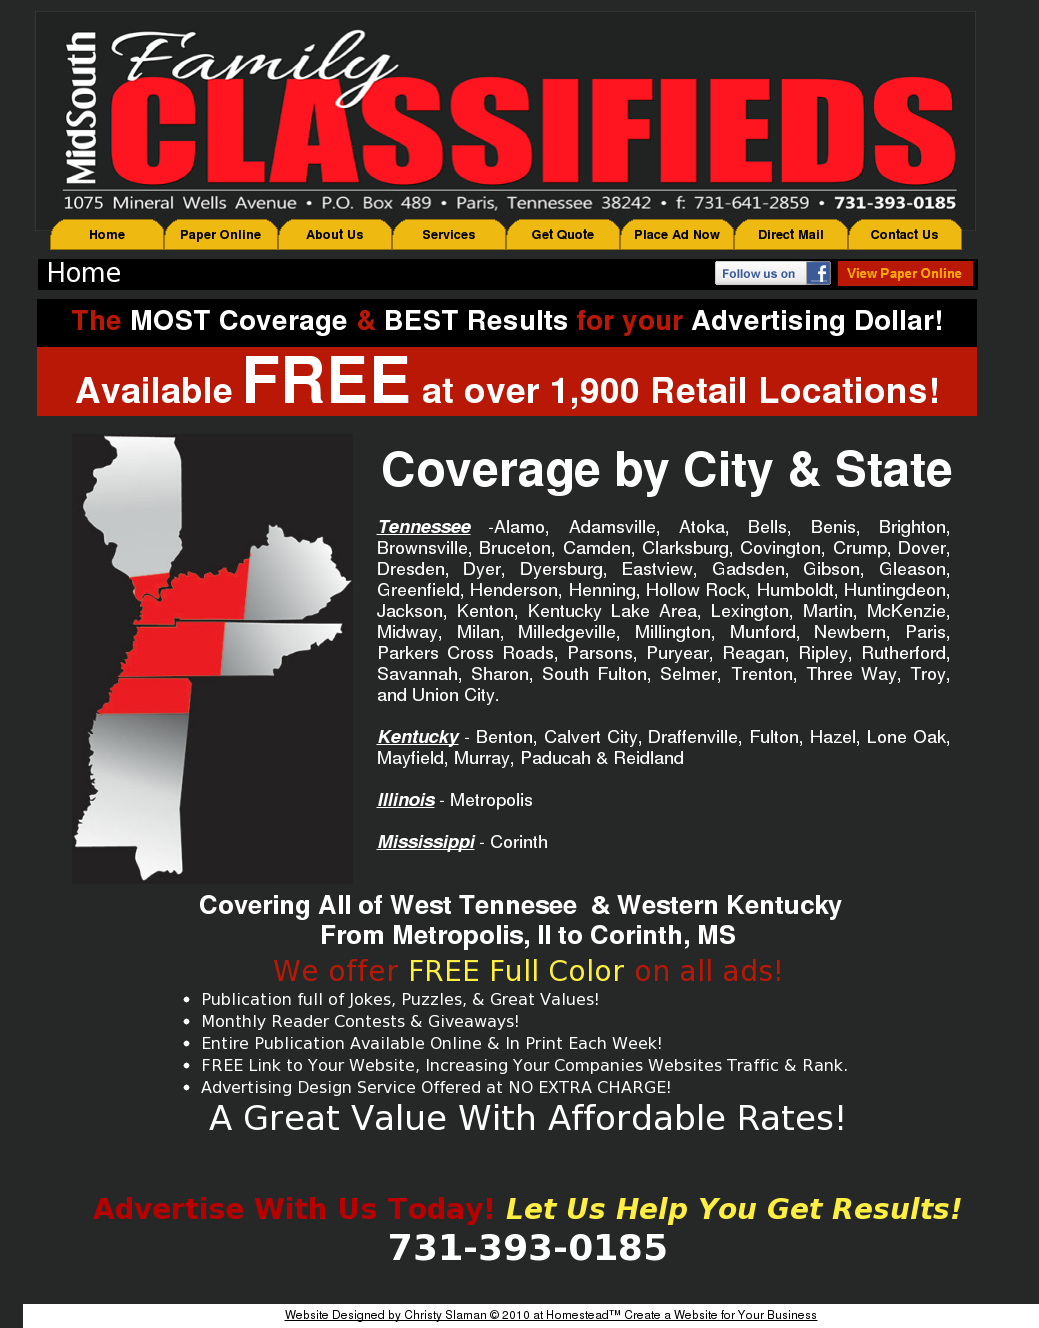 Midsouth Family Classifieds Competitors, Revenue and